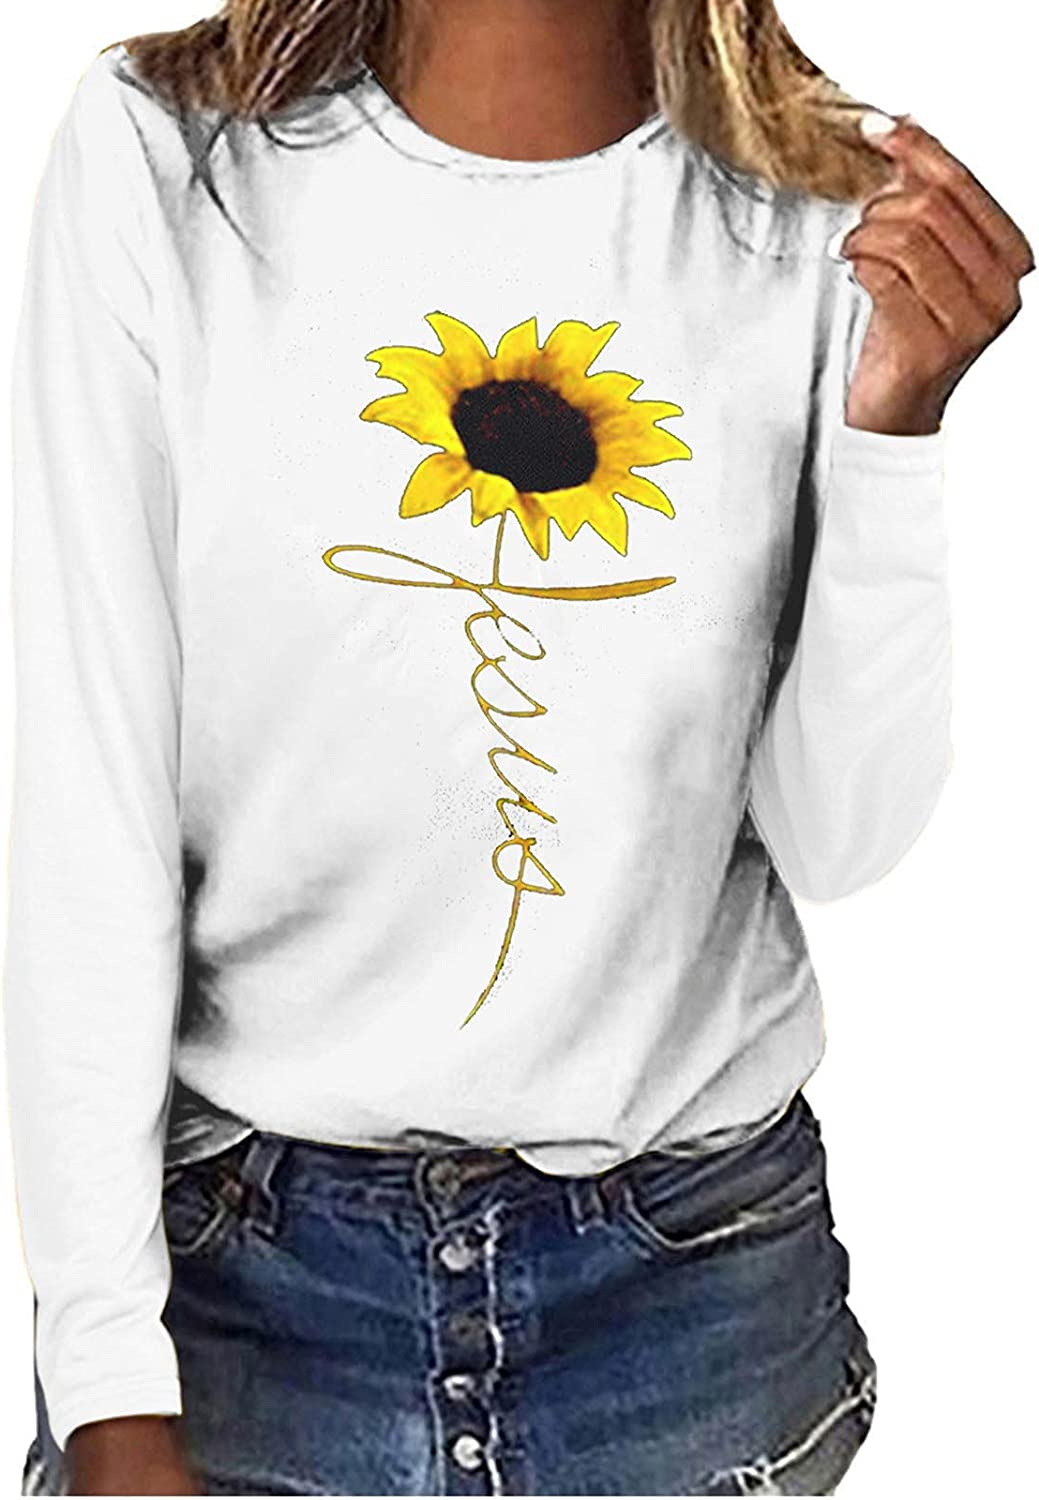 Sweatshirt for Womens Graphics Long Sleeve O Neck T-Shirt Top Sunflower Tee Tops Comfy Tunics Blouse Pullover